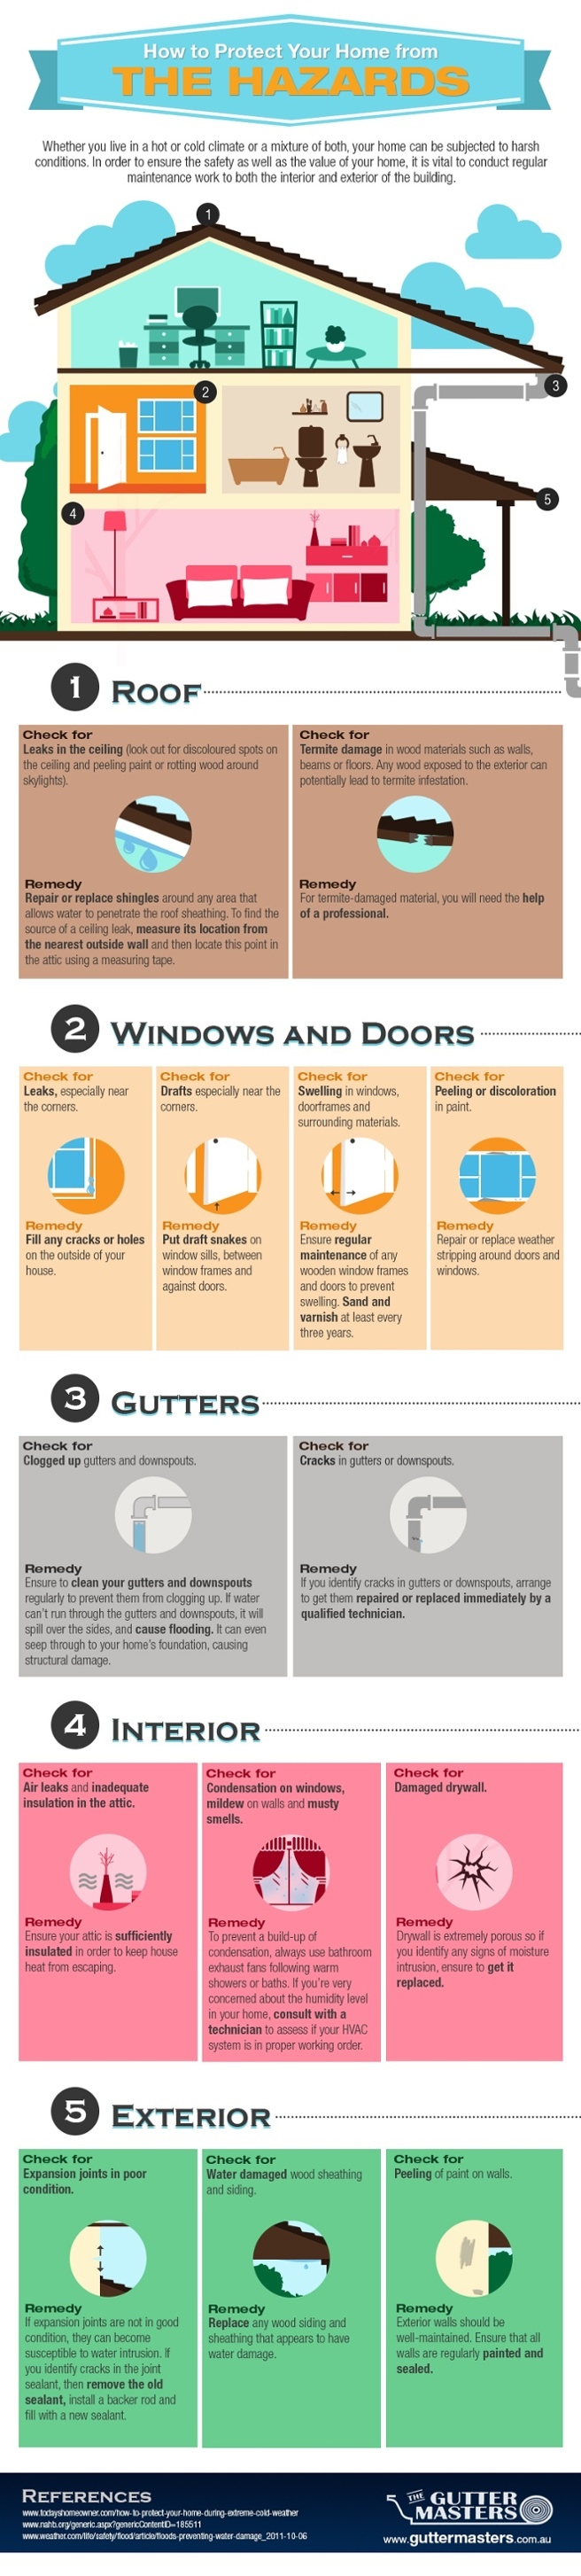 Tips To Protect Your CT Home From Potential Hazards (Infographic)